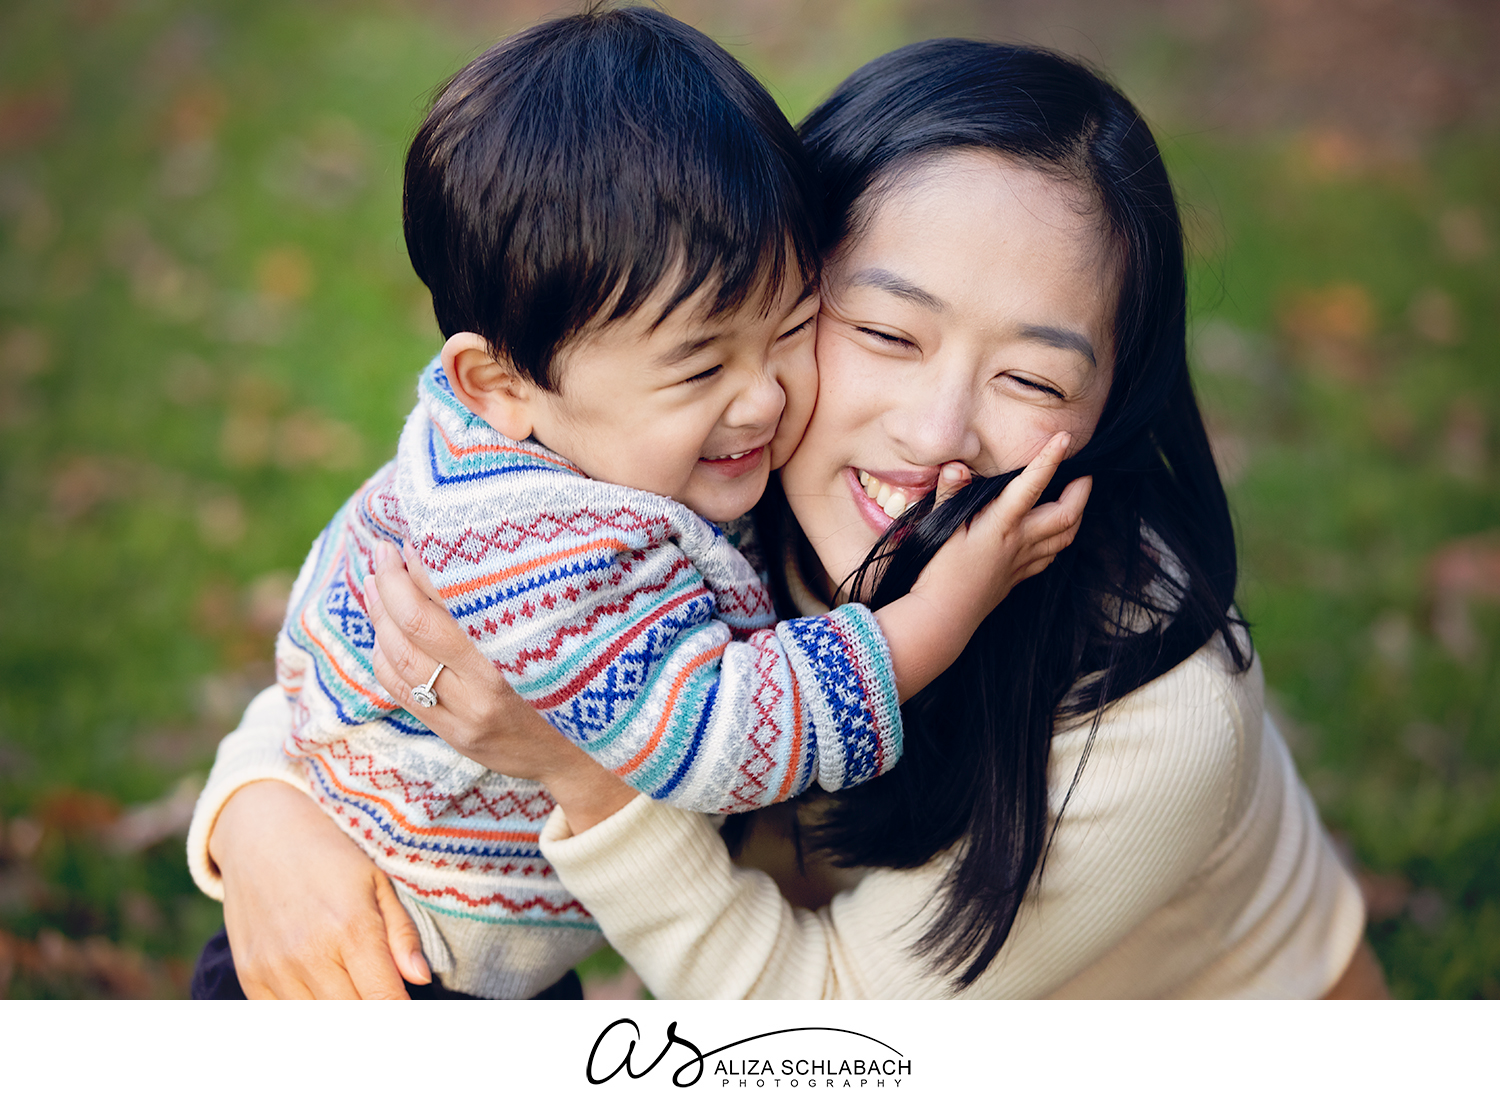 Outdoor photo of an adorable little boy embracing his mother's face. Super cute Japanese family.